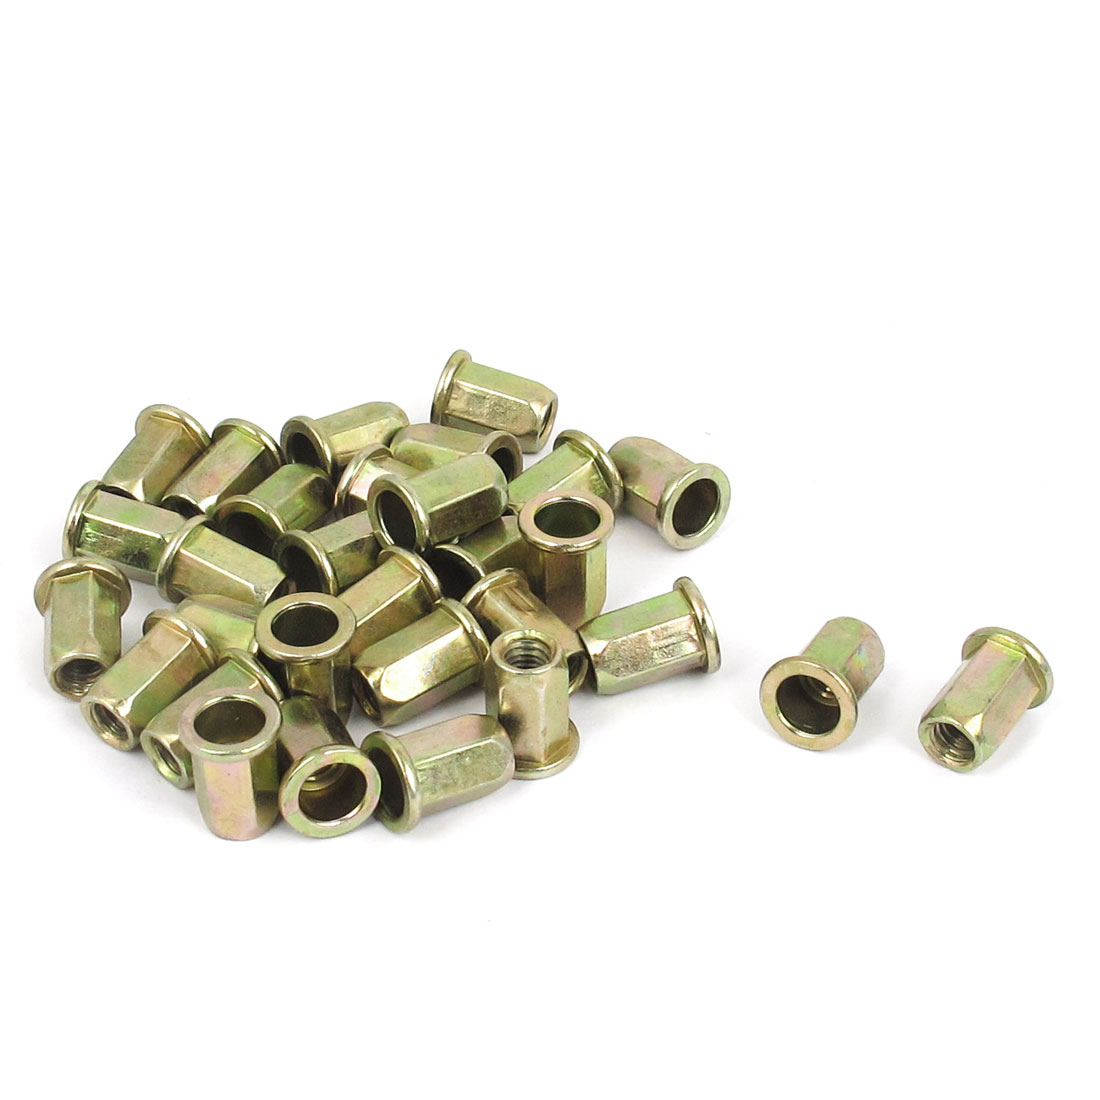 30 Pcs M6x14mm Flat Head Hex Body Open End Blind Rivet Nuts Nutserts Fasteners